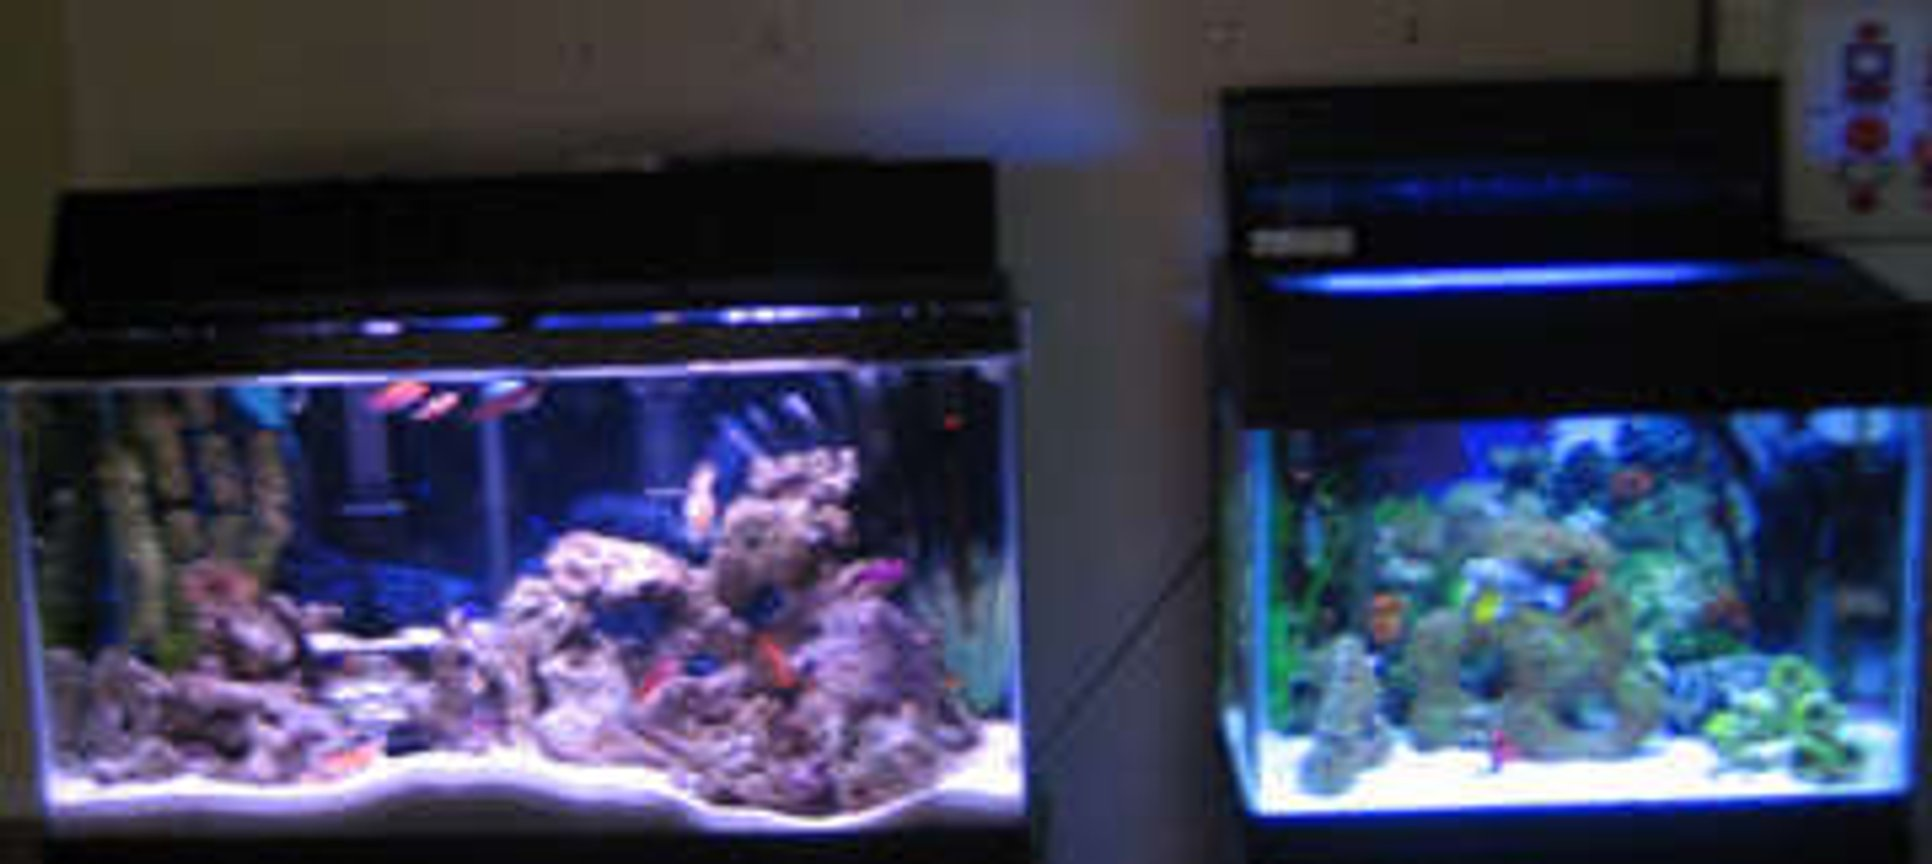 38 gallons saltwater fish tank (mostly fish, little/no live coral) - tank 1 and tank 2